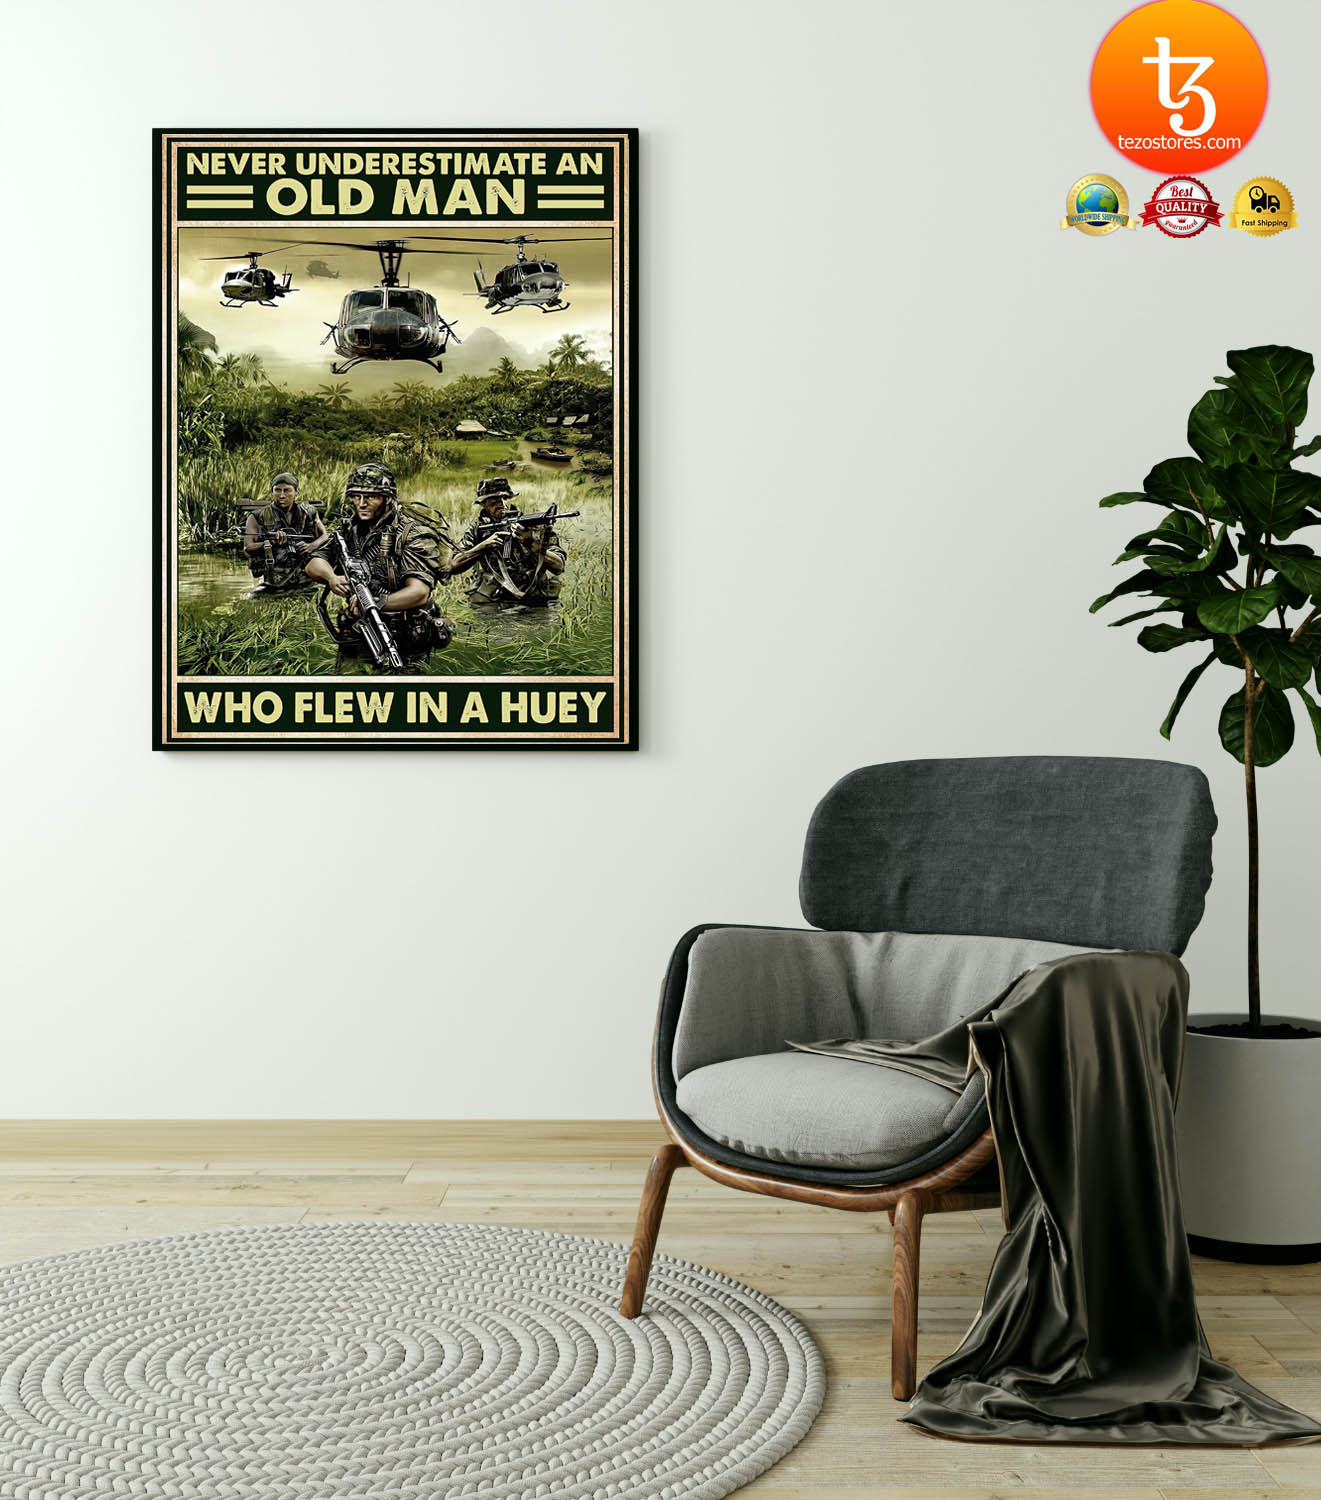 Never underestimate an old man who flew in a huey poster 4